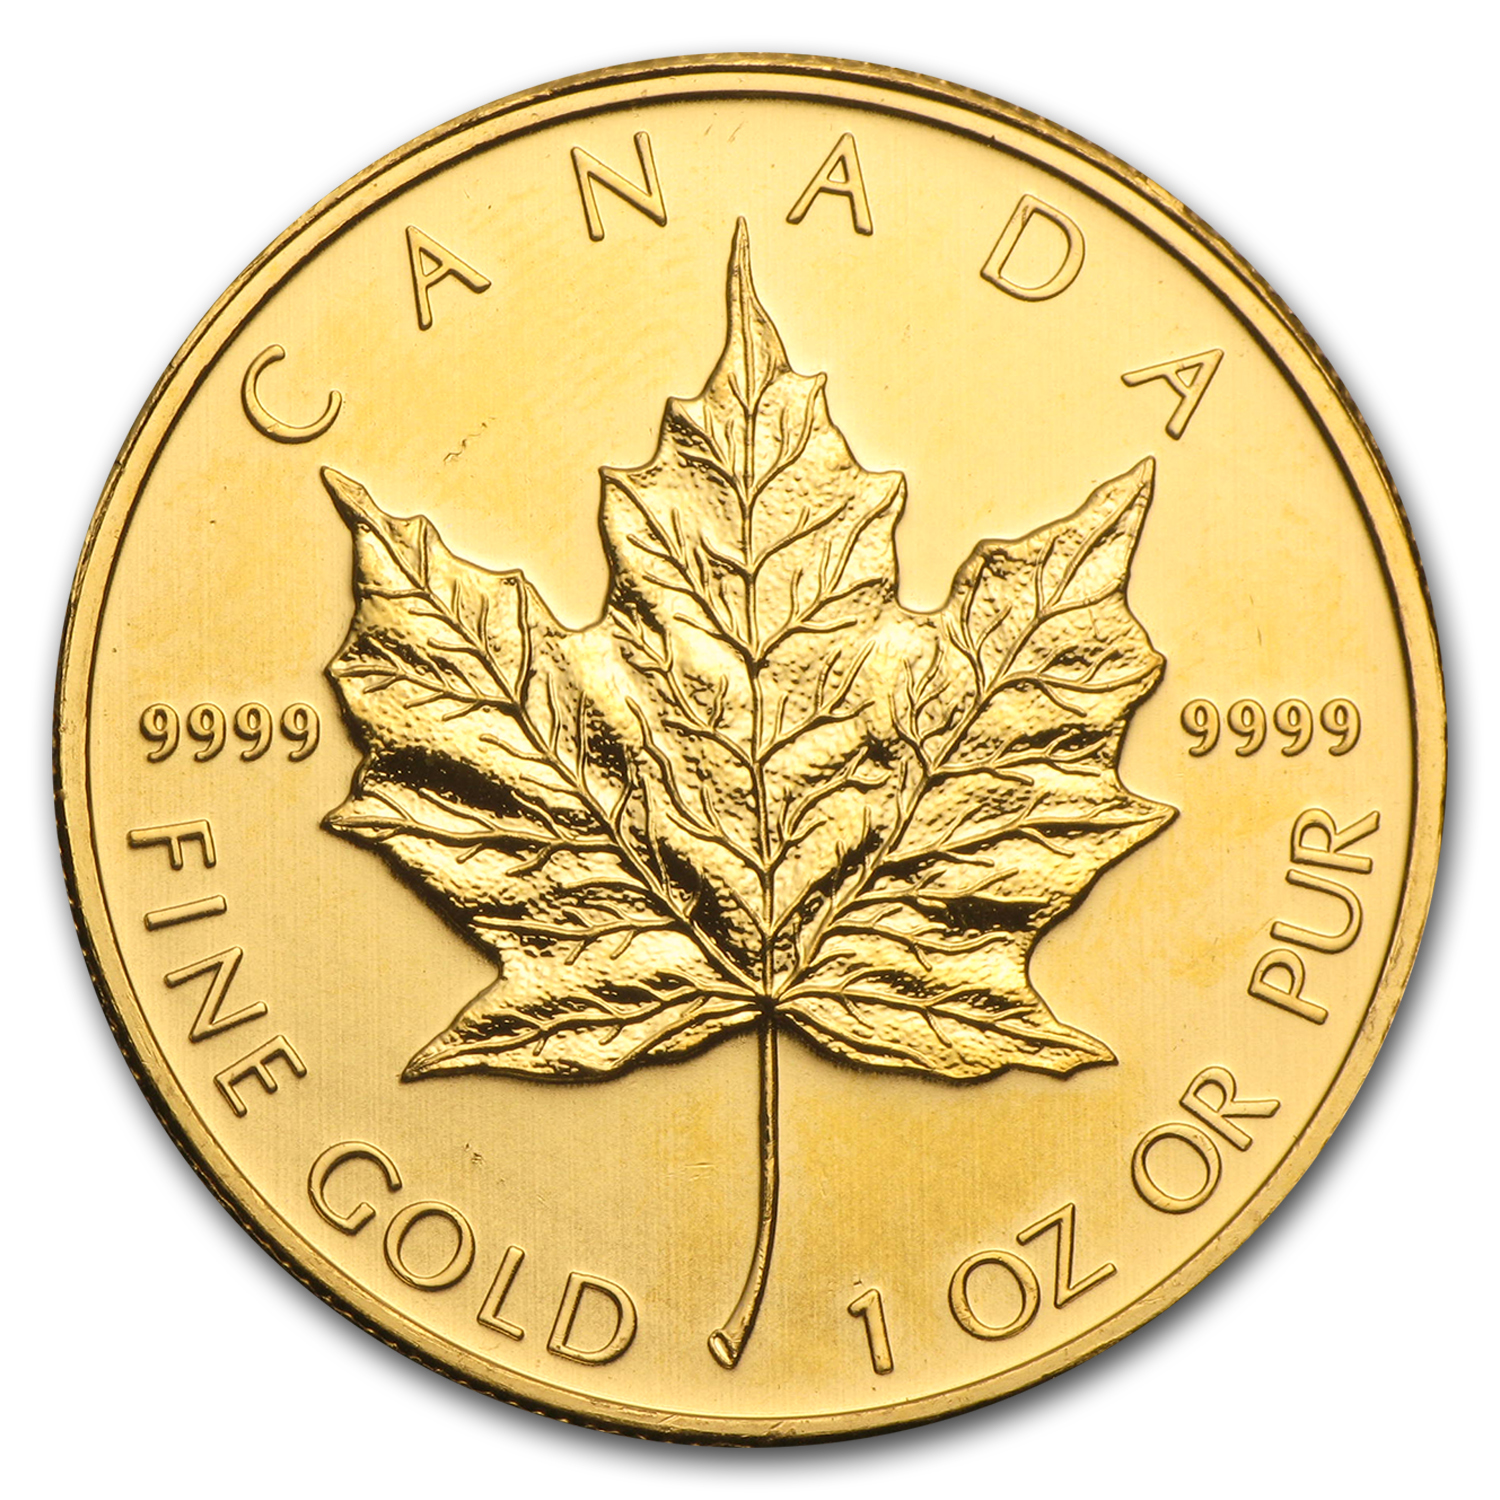 2011 Canada 1 oz Gold Maple Leaf BU